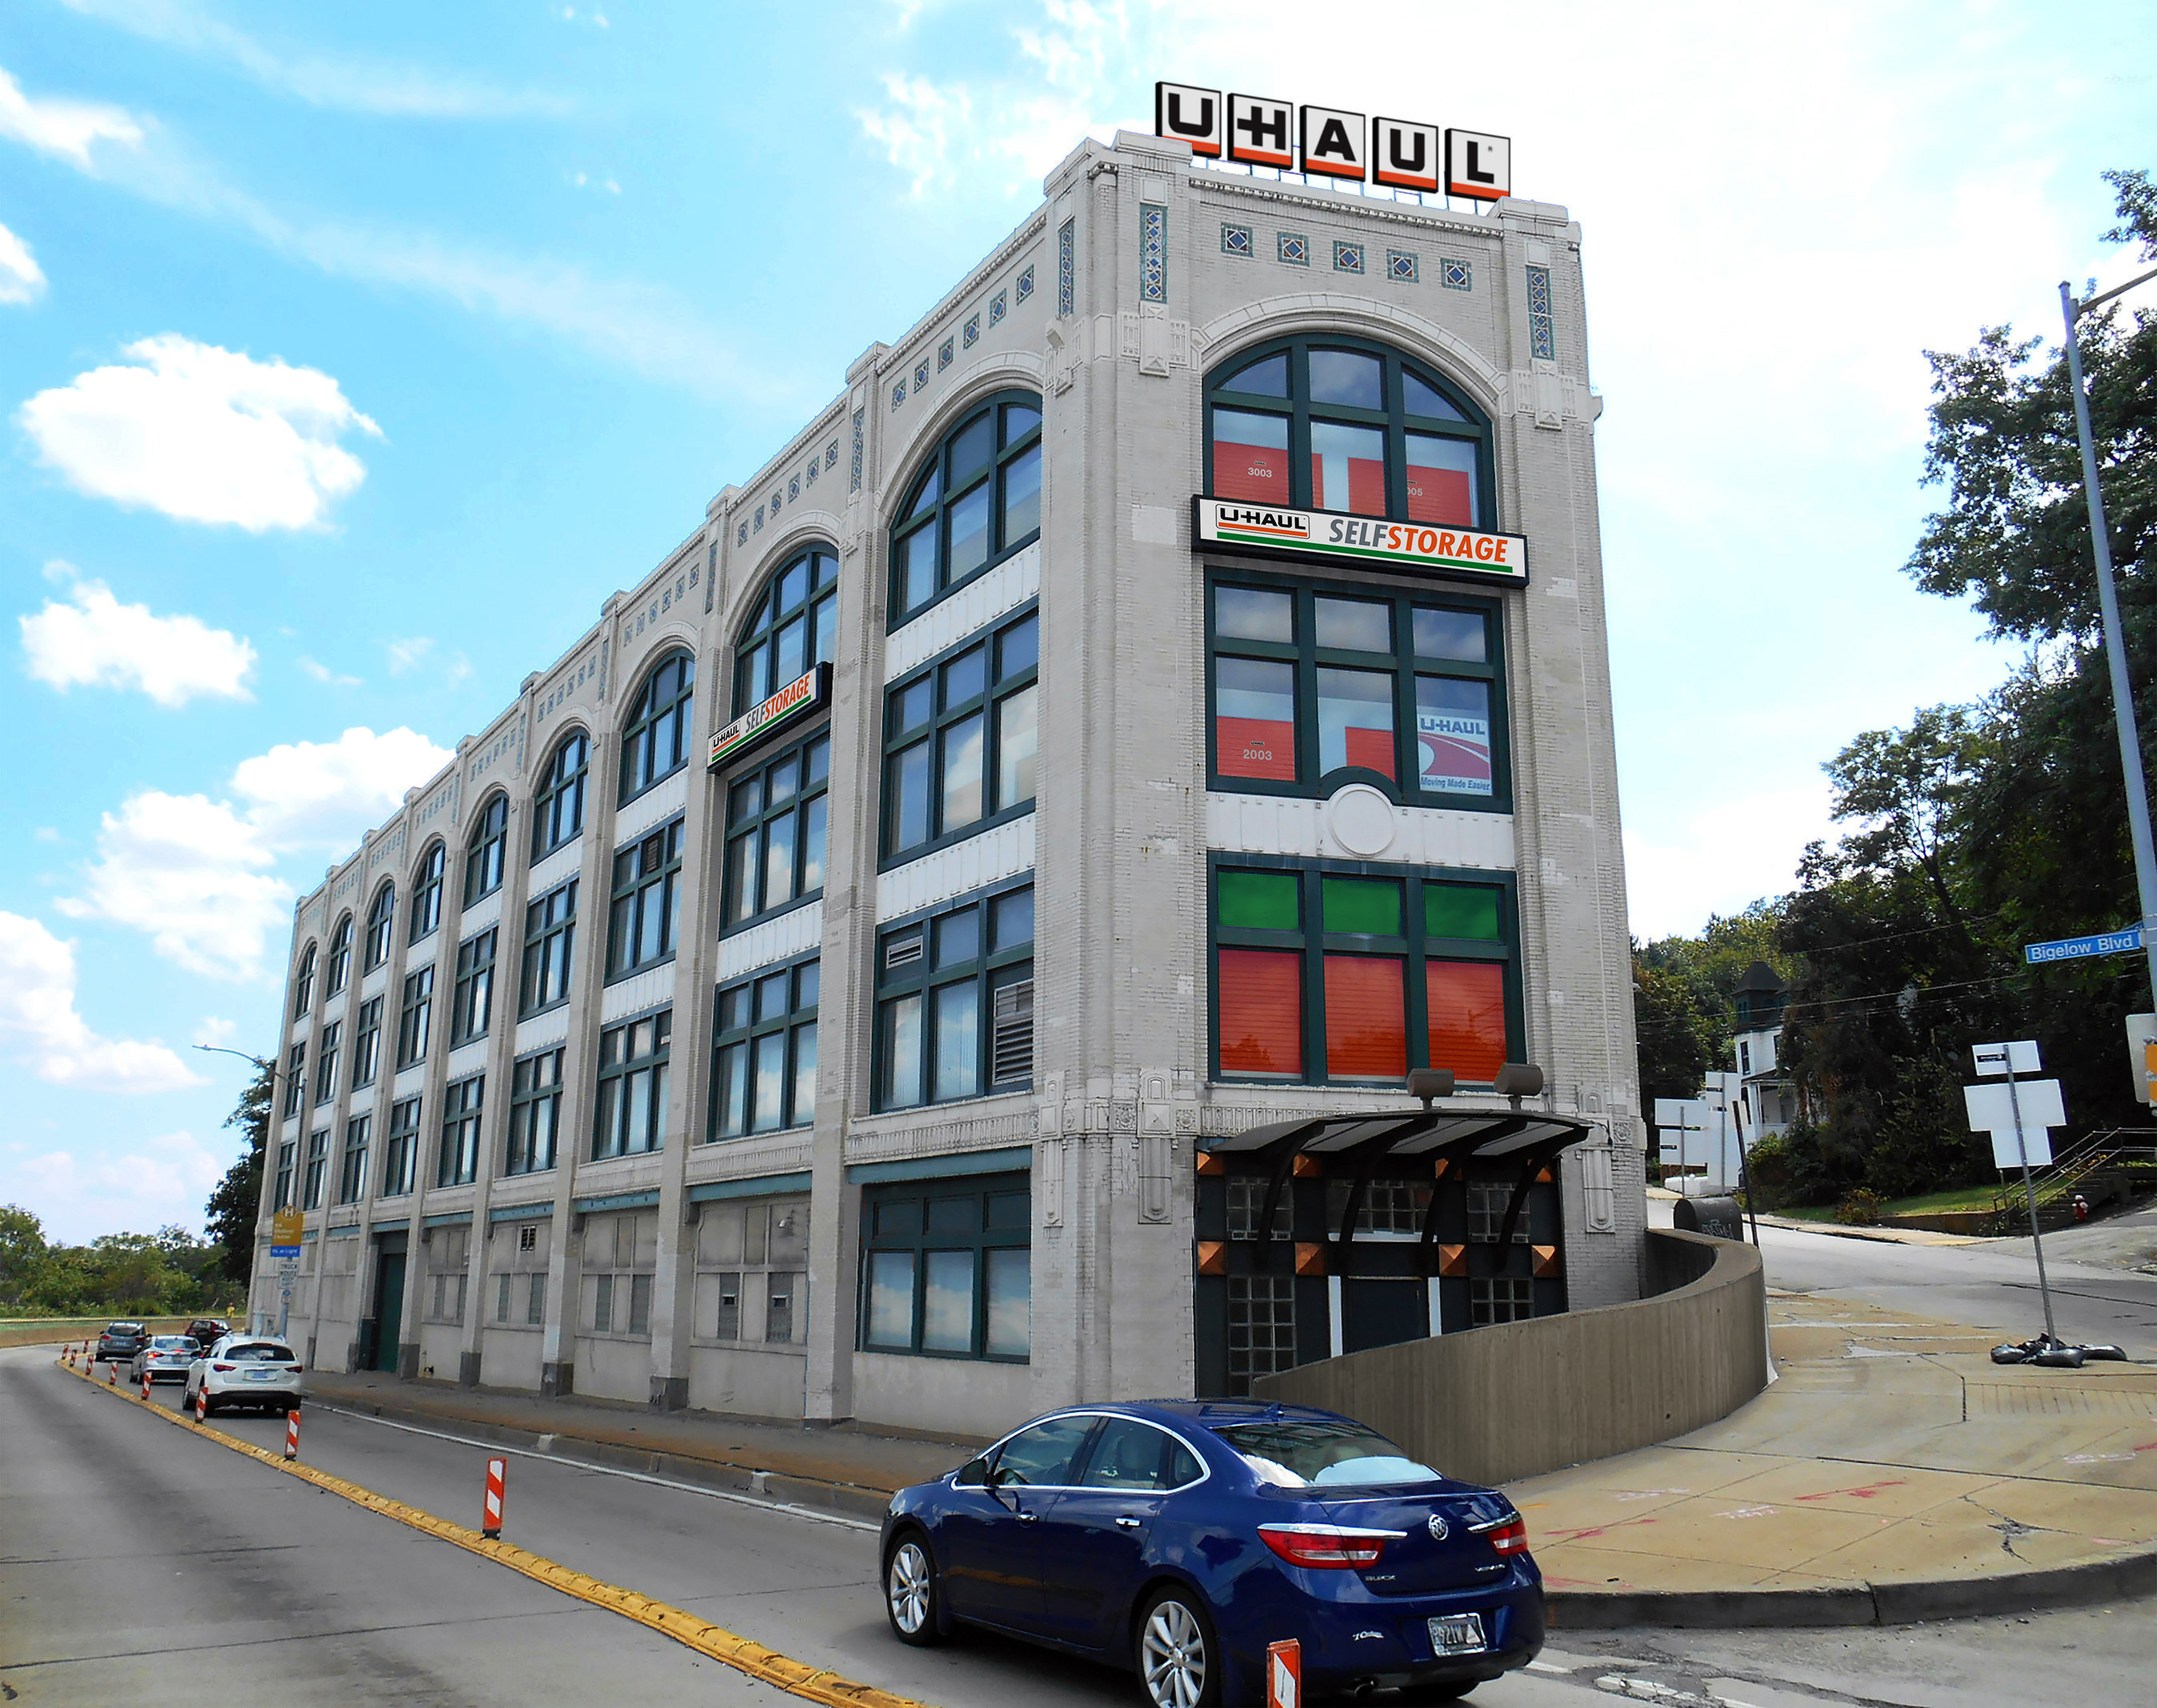 U-Haul recently acquired the iconic Iron City Storage building at 3700 Bigelow Blvd. and is refurbishing the facility to better meet the moving and storage demands of Pittsburgh college students. U-Haul Moving & Storage of Iron City offers 744 storage units; 292 feature climate-control. The facility is within two miles of the University of Pittsburgh, Carnegie Mellon University and Carlow University. Duquesne University is just four miles away. A rendered image shows U-Haul signage.